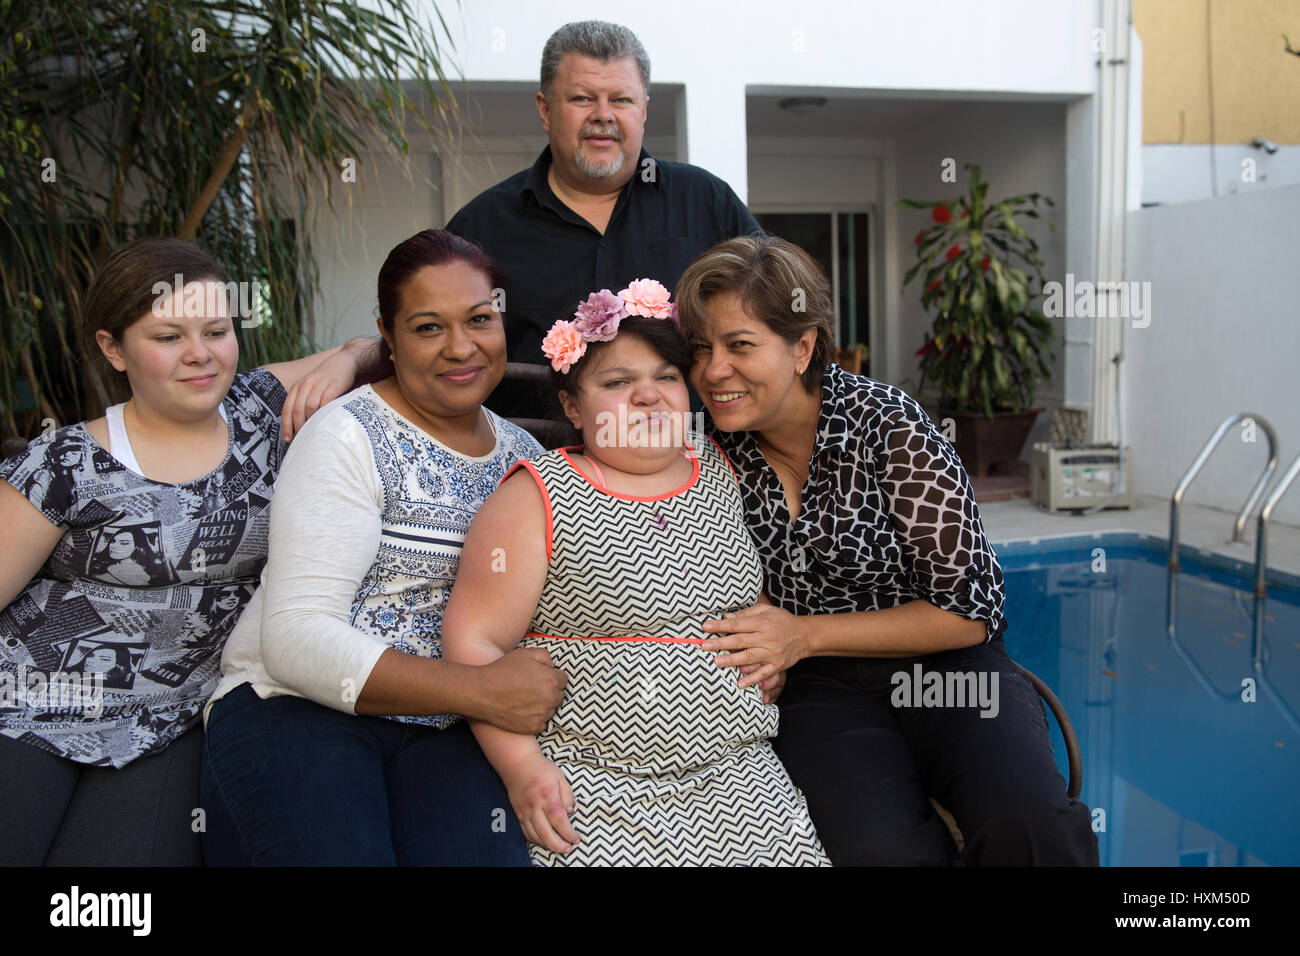 Ana Ximena Navarro (C) and her family are pictured at their home in Guadalajara, Mexico on February 22, 2017. Ximena - Stock Image